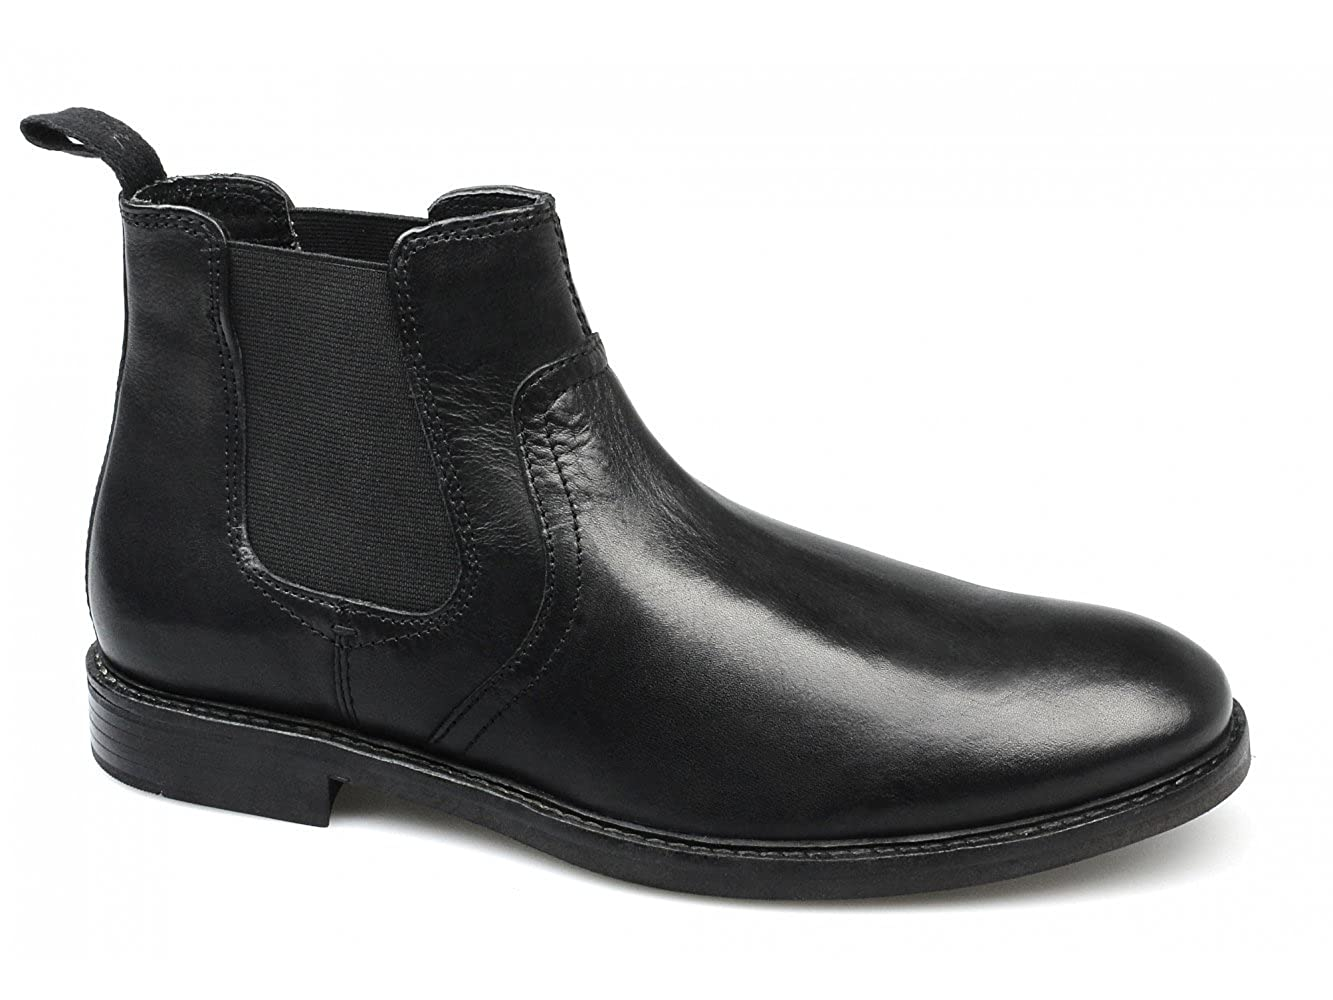 50a95dbdfd4 Red Tape NEWTON Mens Leather Chelsea Boots Black UK 9: Amazon.co.uk ...